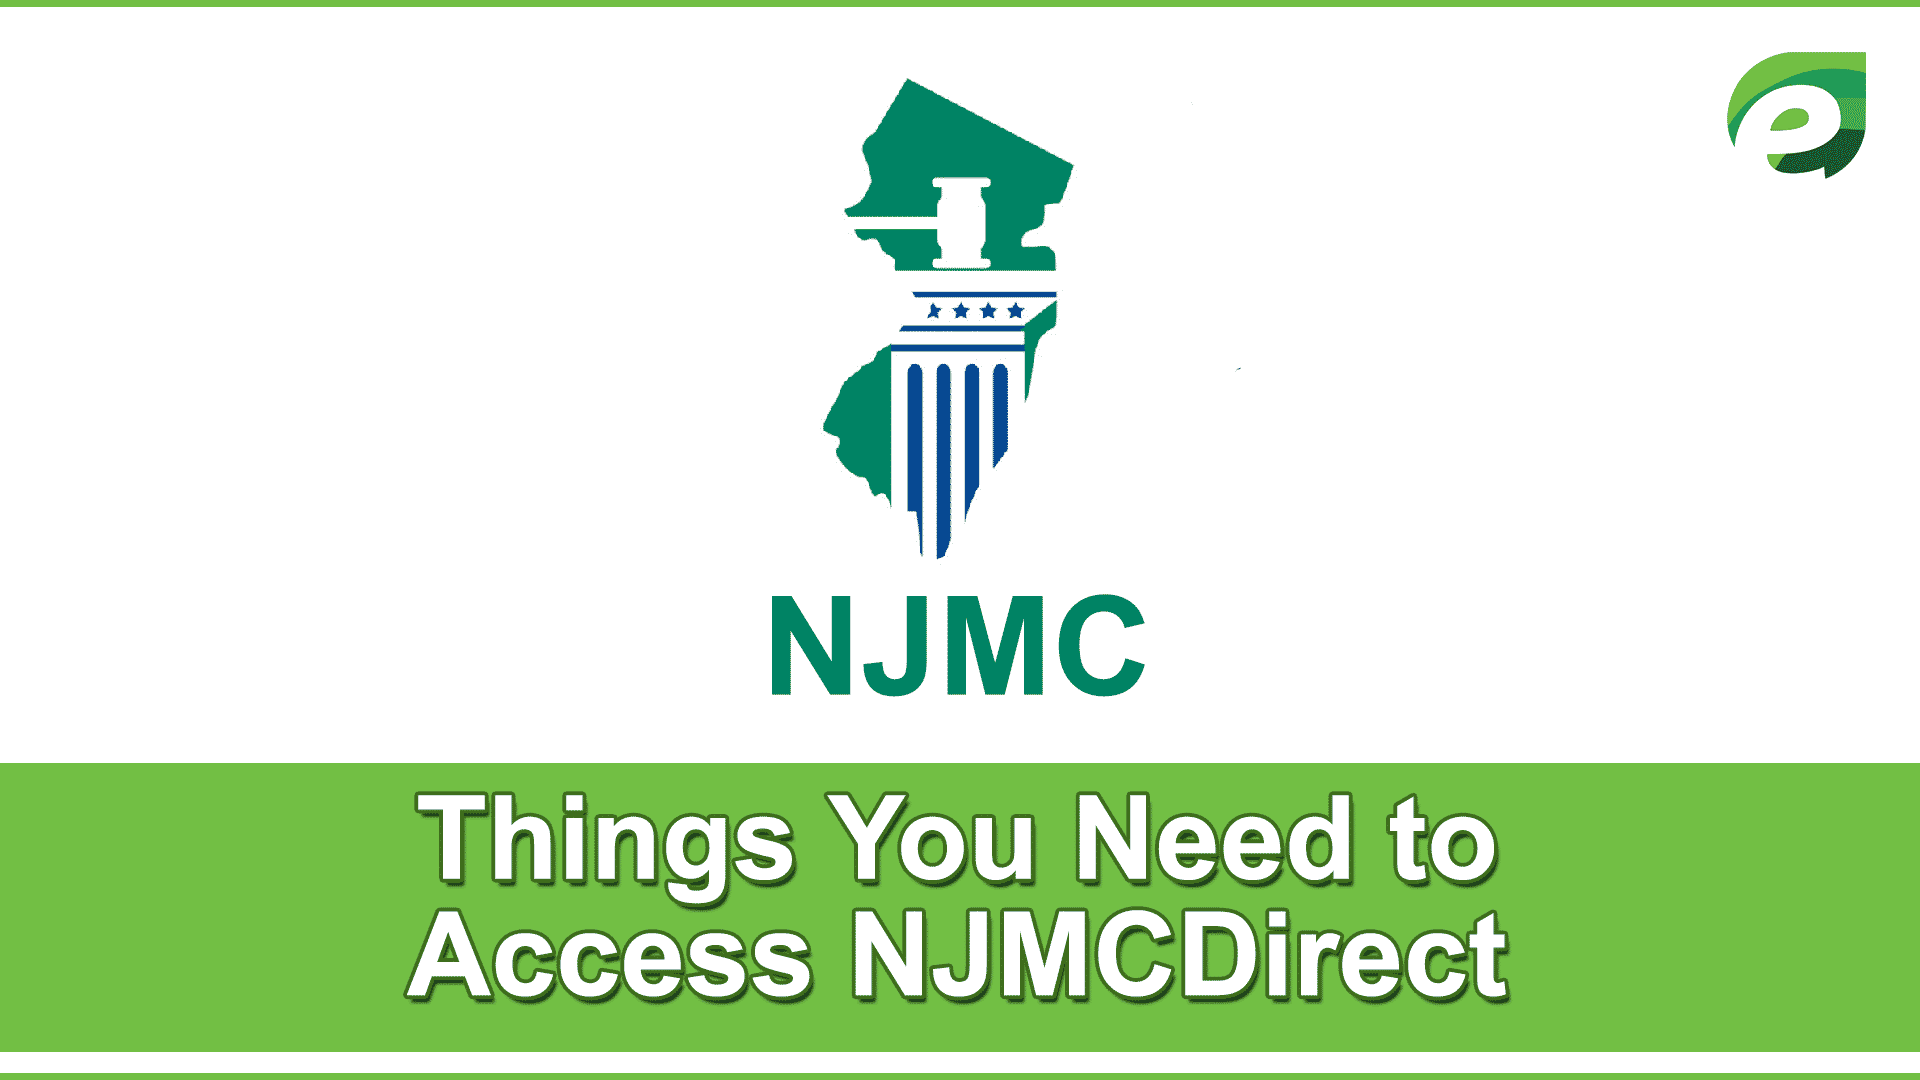 njmcdirect- tins needed to access courts